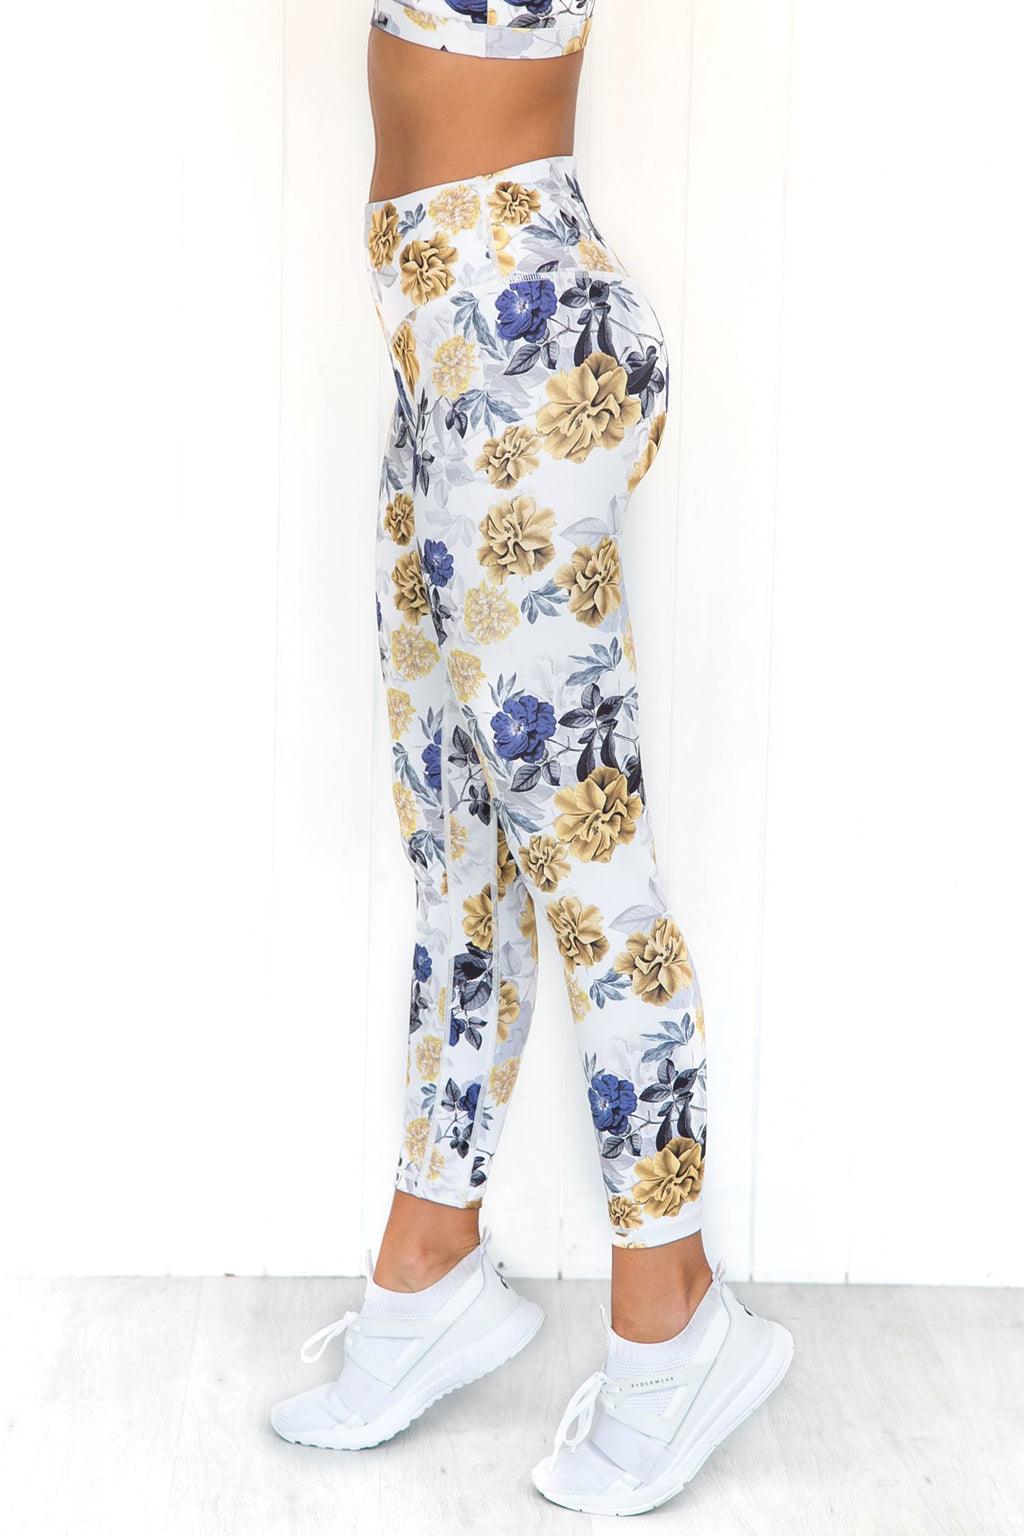 Vintage Bloom 7/8 Legging - PURE DASH